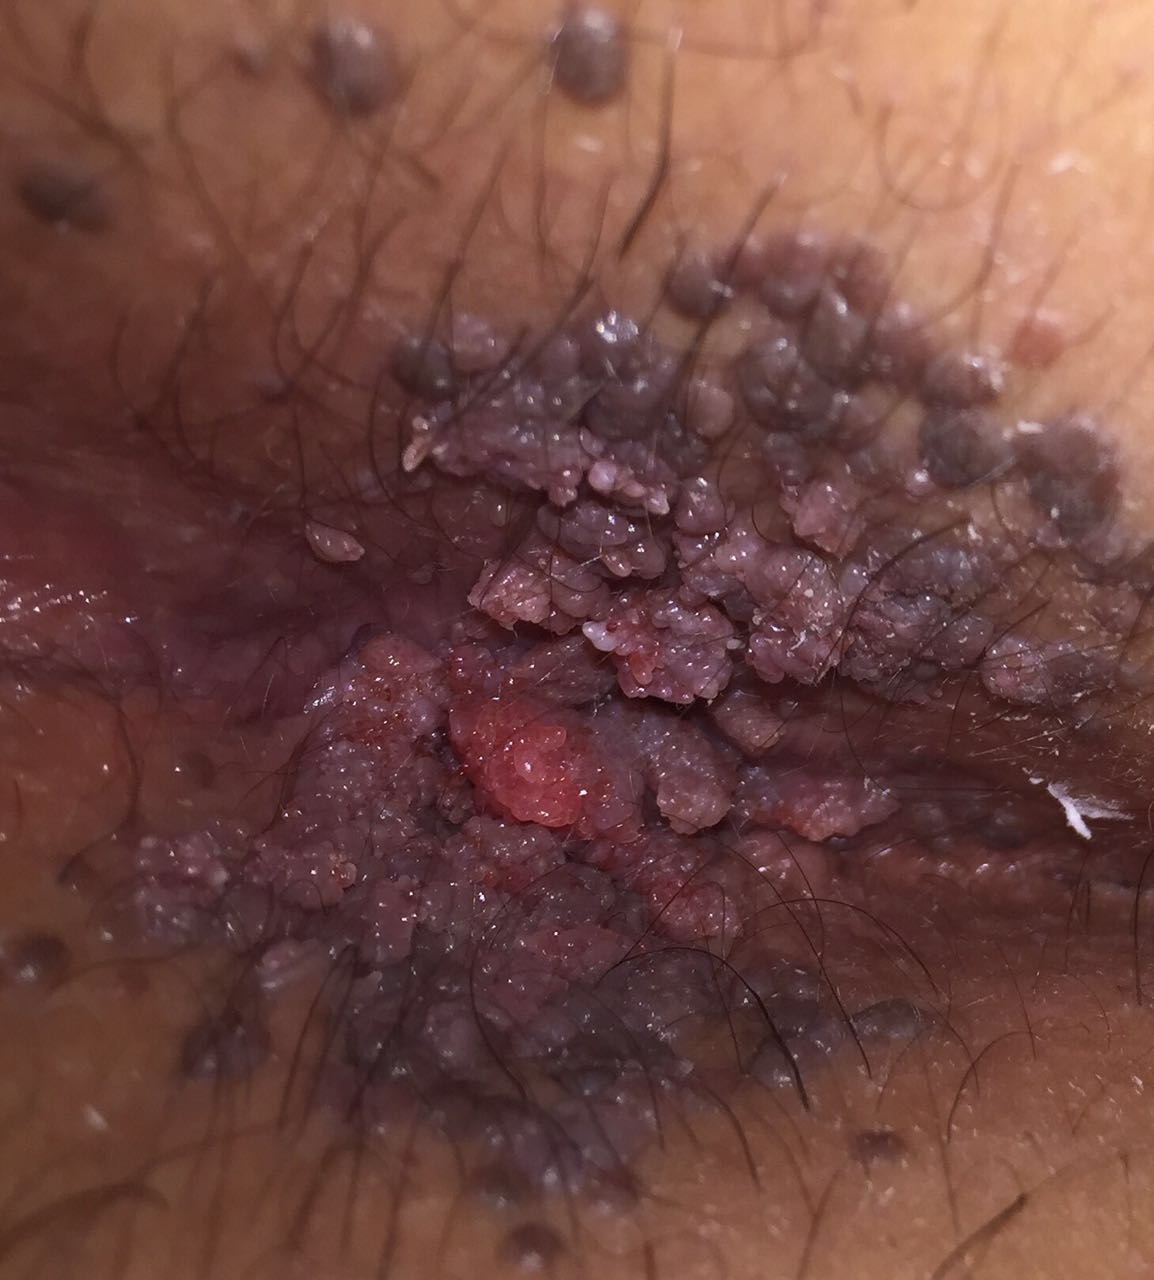 Can anal warts be cured